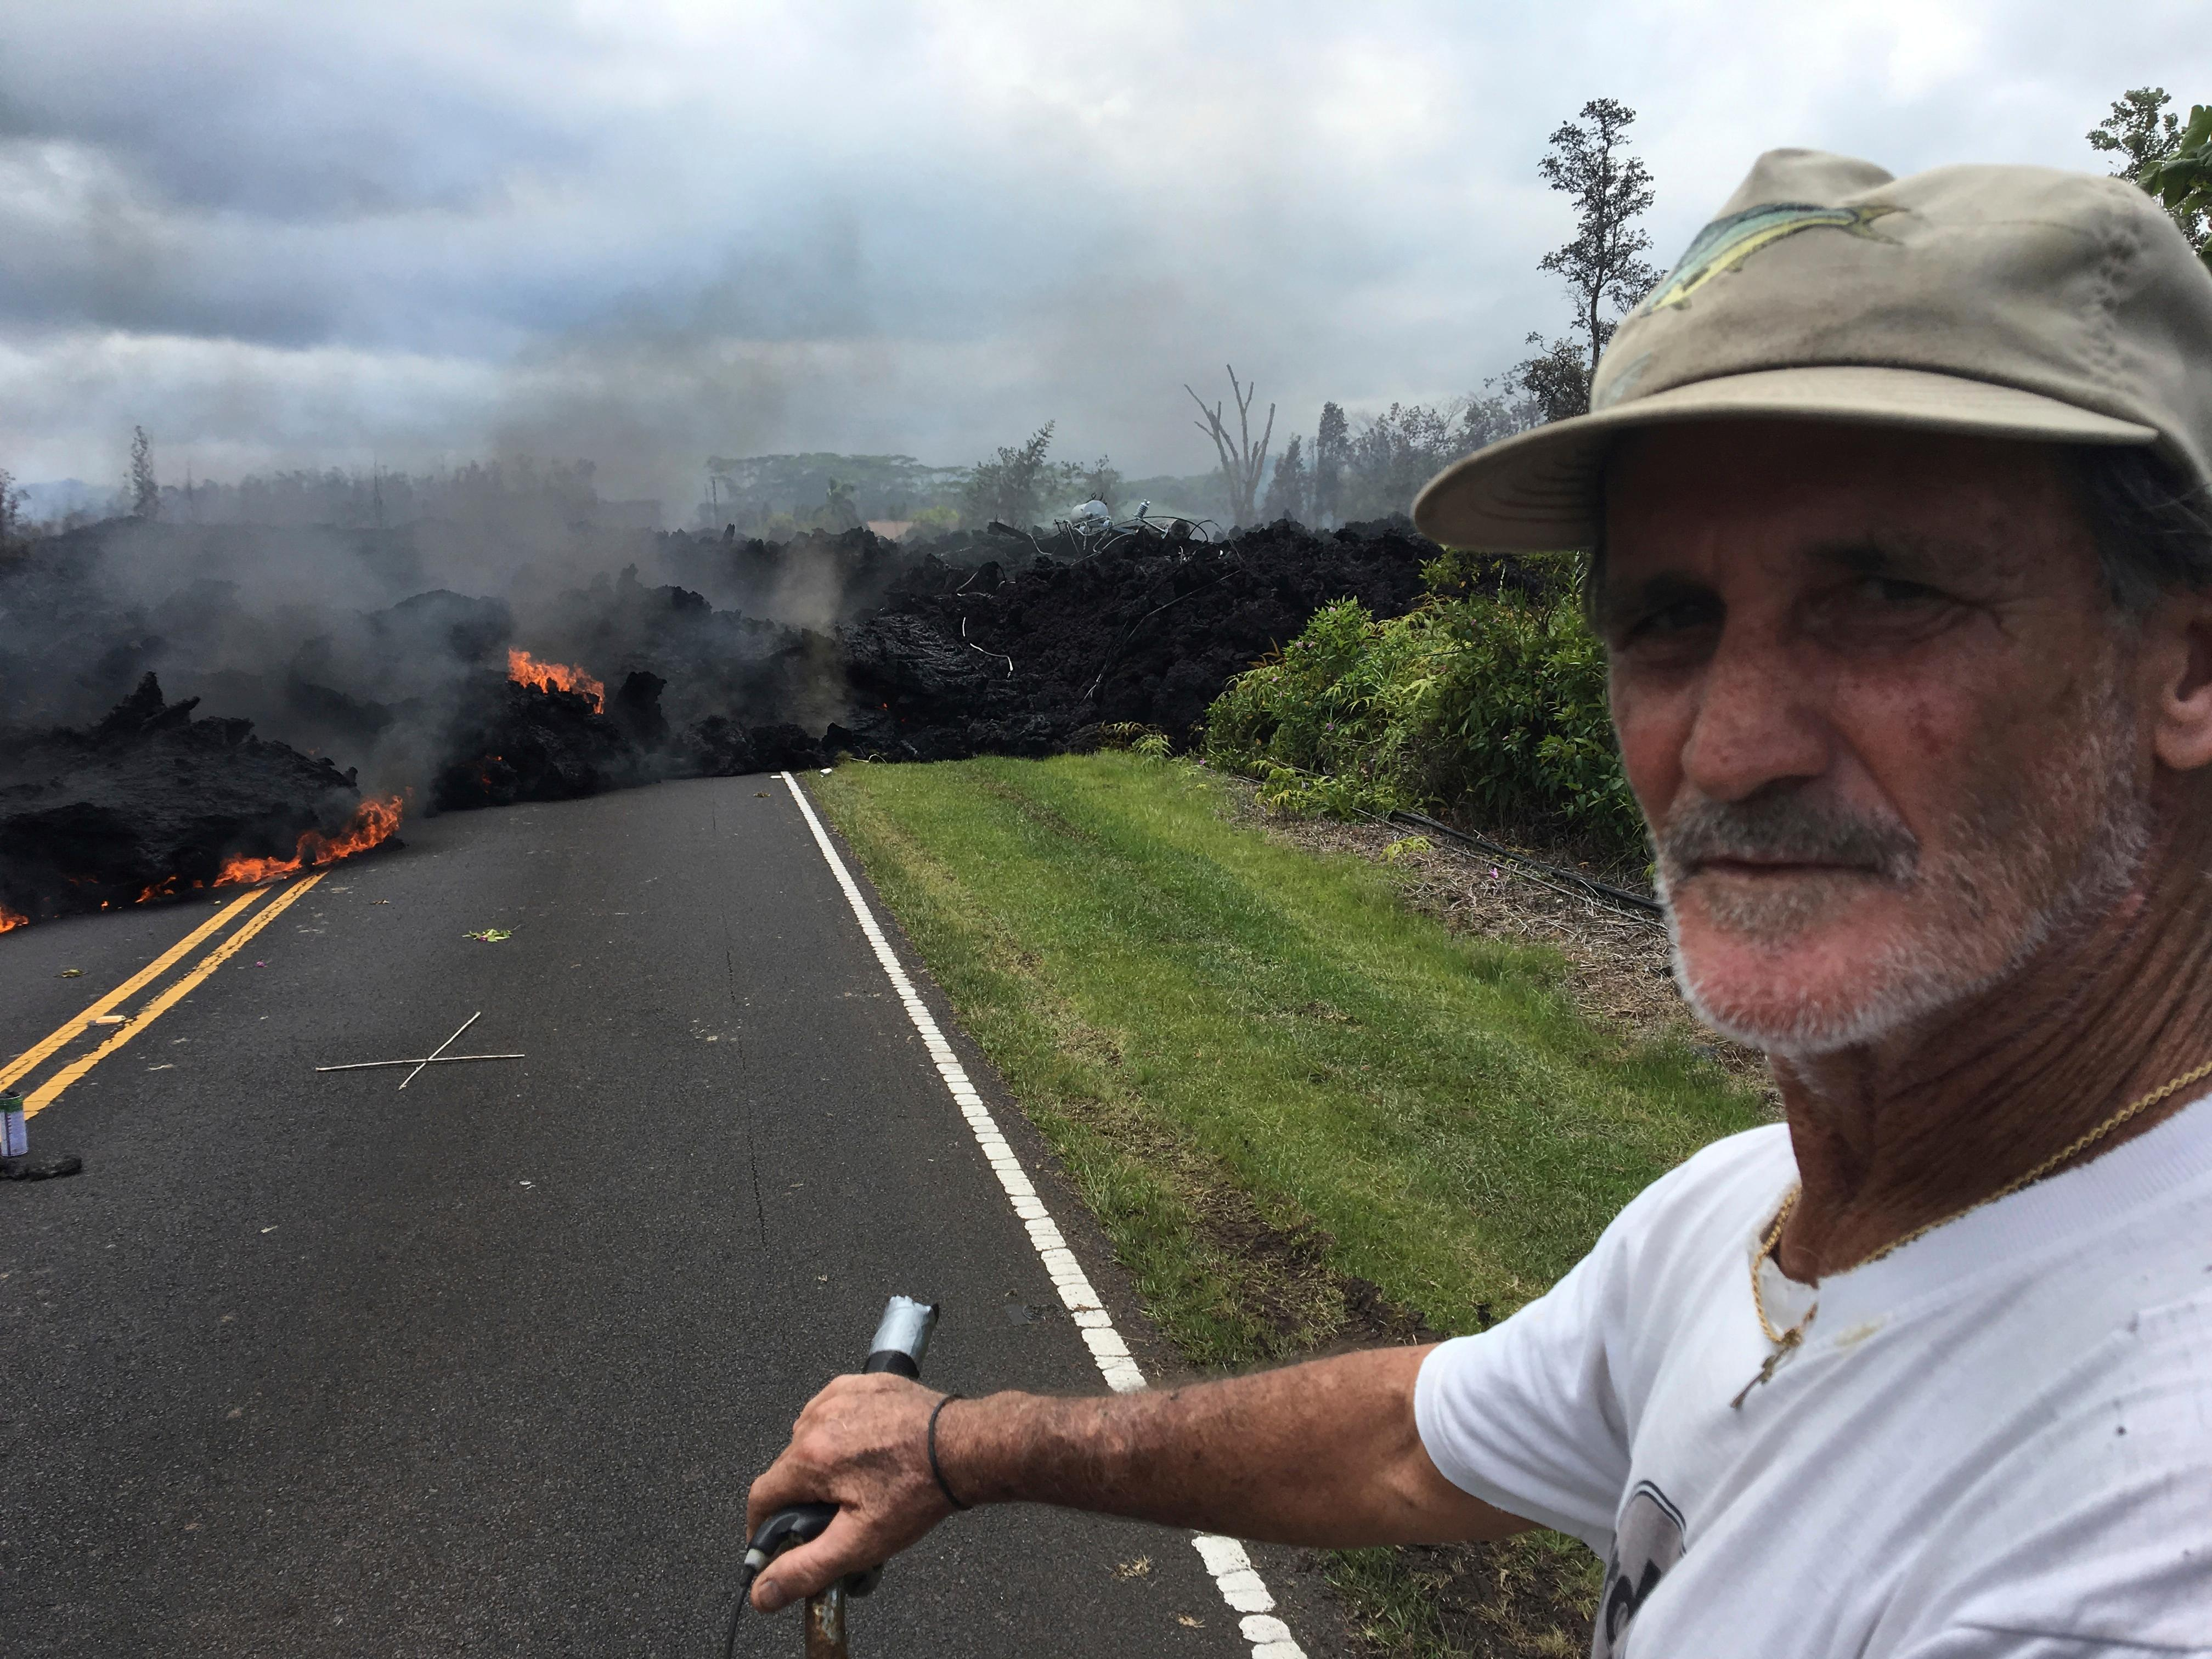 Resident Sam Knox, 65, rides his bicycle to the edge of the road as lava burns across the road in the Leilani Estates in Pahoa, Hawaii, Saturday, May 5, 2018. Hundreds of anxious residents on the Big Island of Hawaii hunkered down Saturday for what could be weeks or months of upheaval as the dangers from an erupting Kilauea volcano continued to grow. Lava spurted from volcanic vents, toxic gas filled the air and strong earthquakes, including a magnitude 6.9 temblor on Friday, rocked an already jittery population. (AP Photo/Marco Garcia)